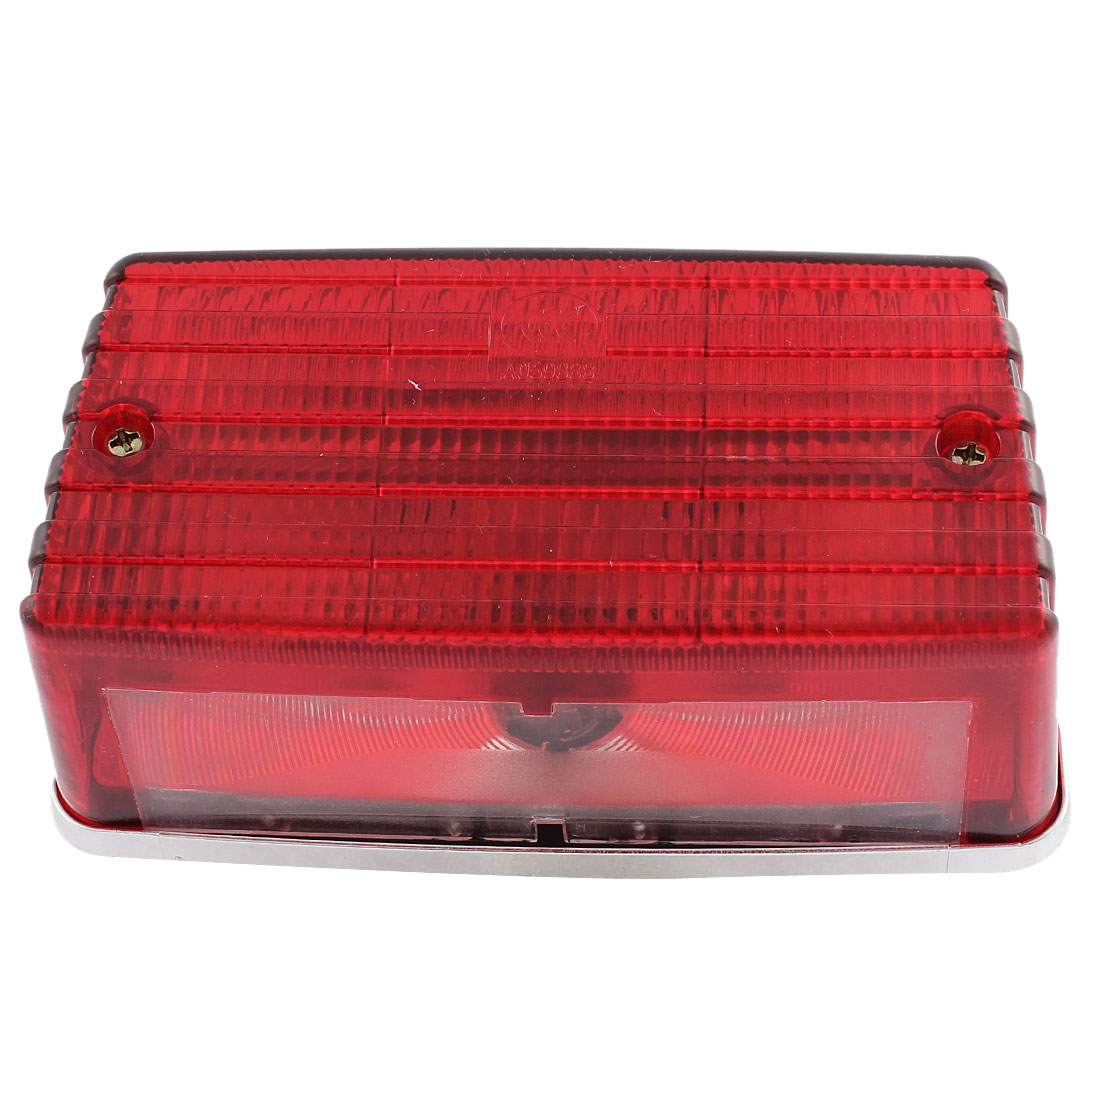 Motorcycle Red Light Tailight Tail Lamps DC 12V for GS-125